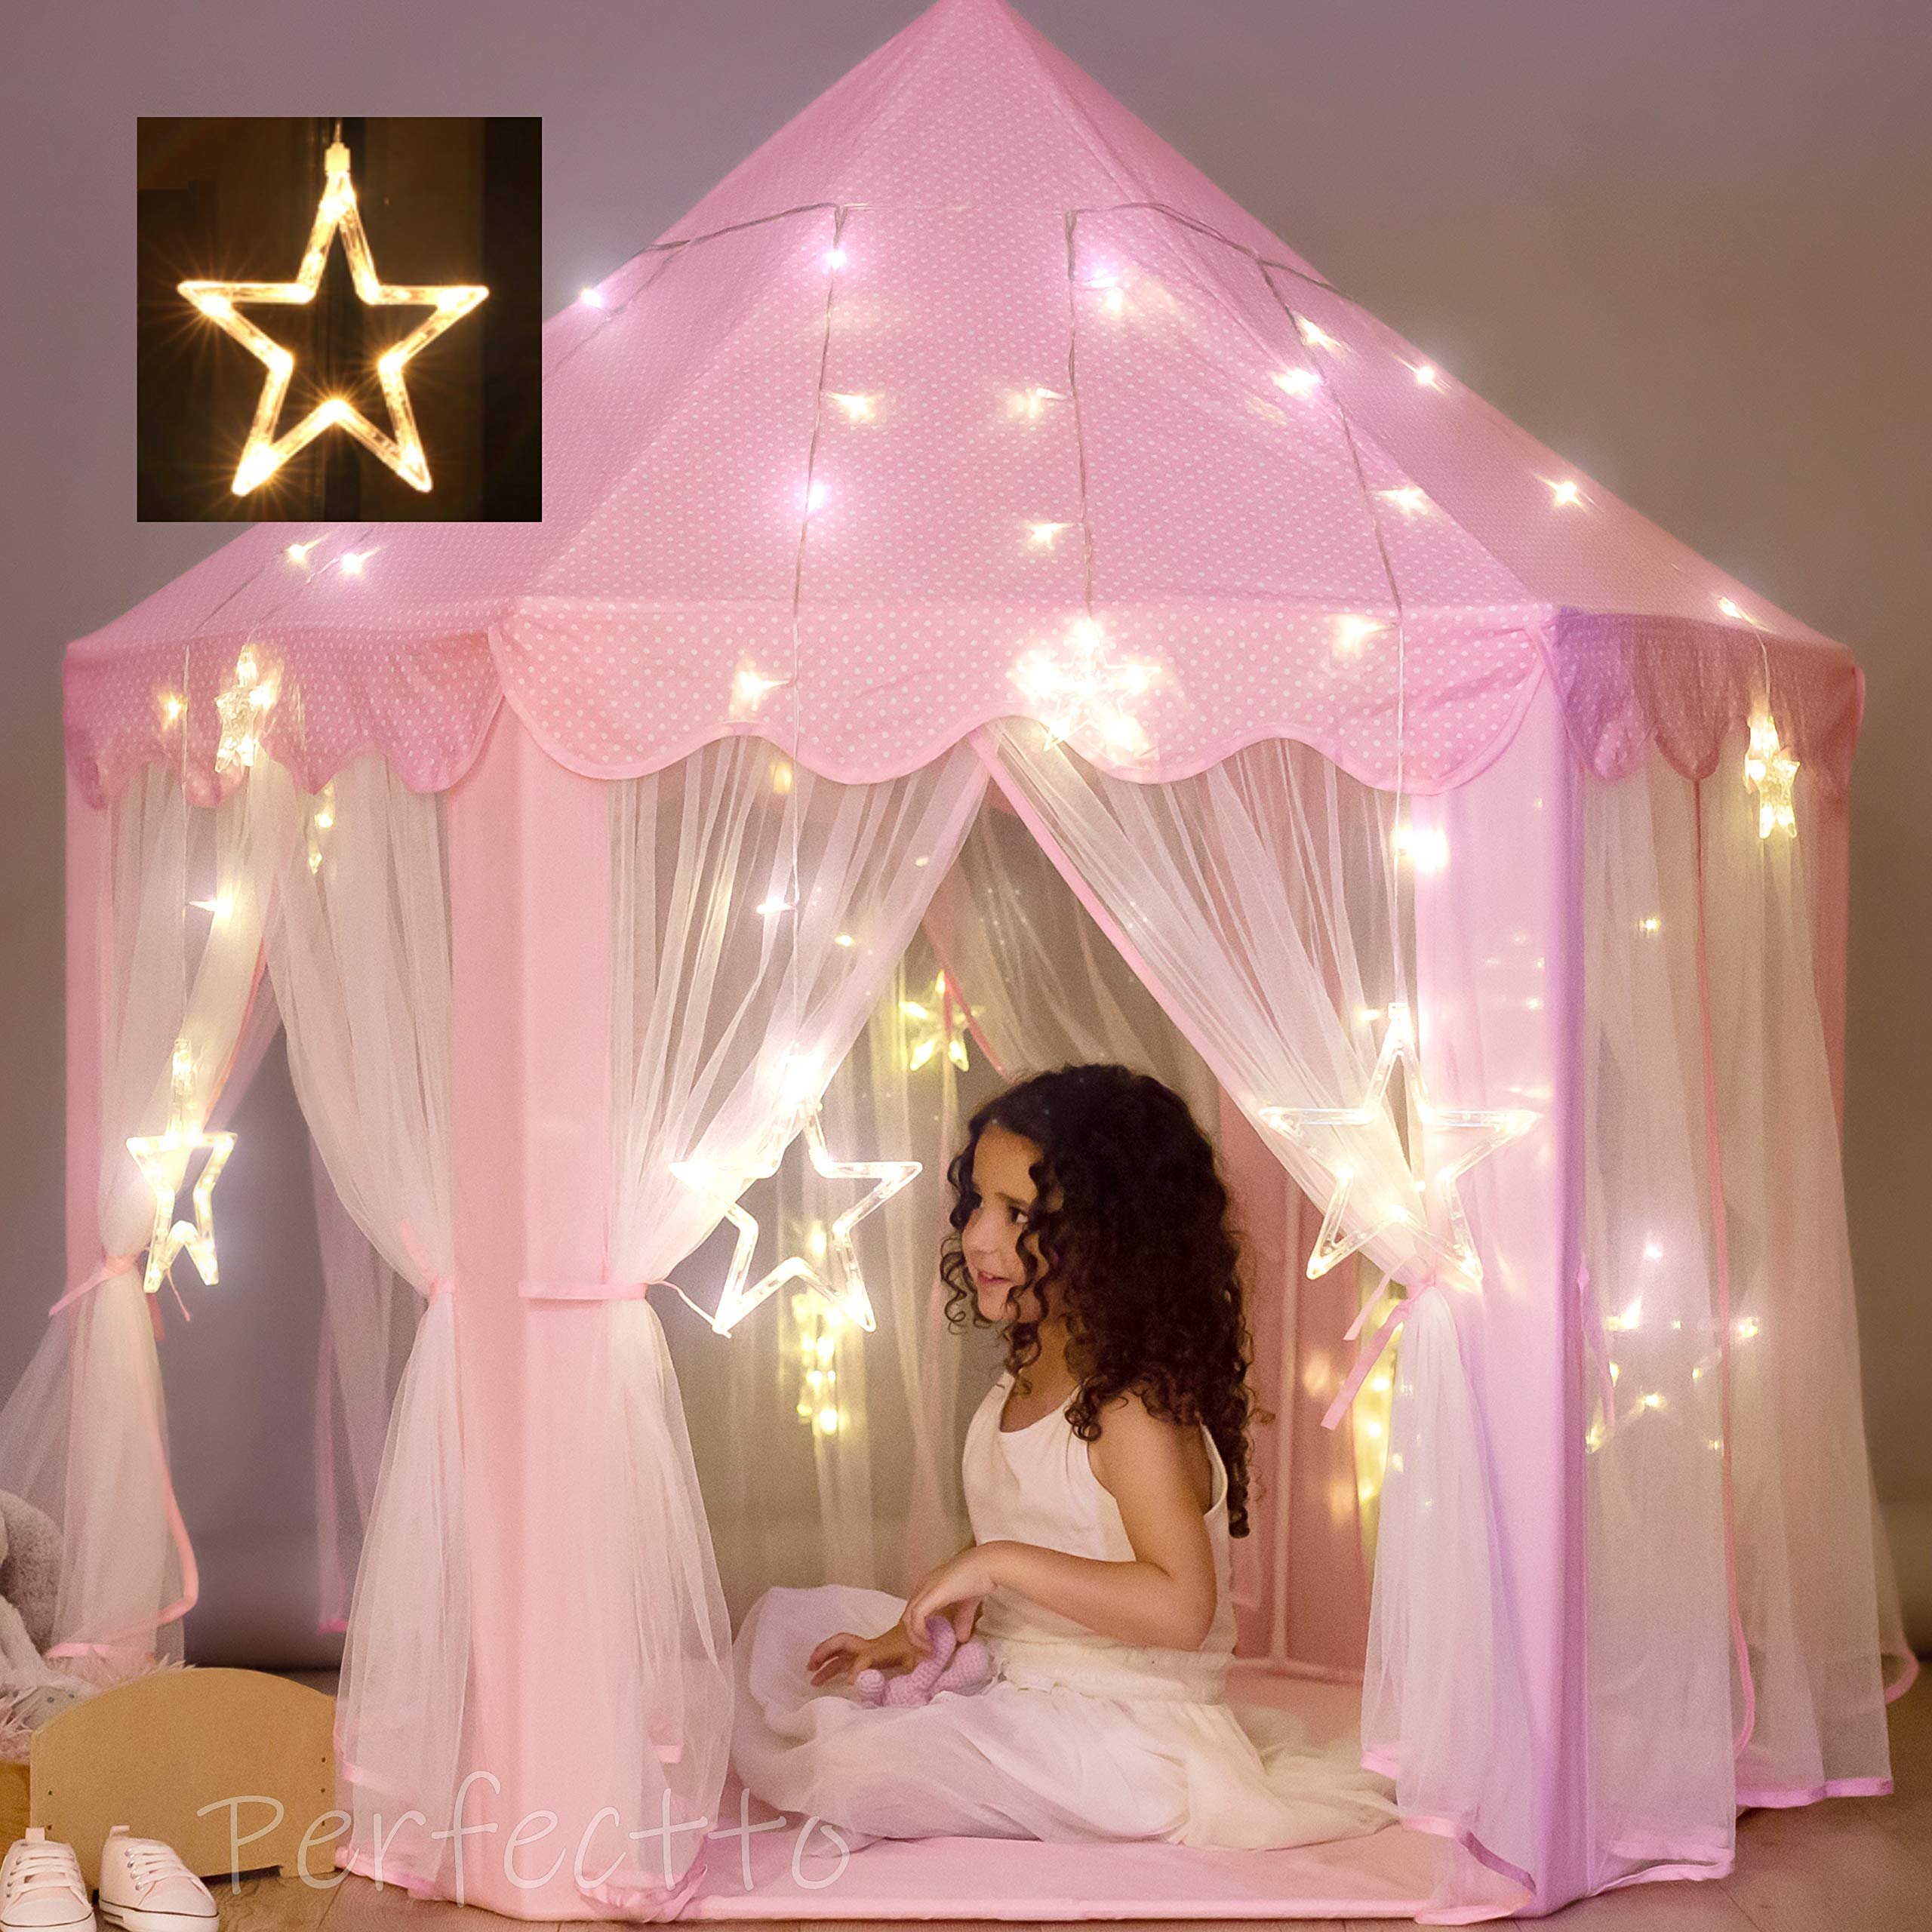 Princess Castle Play Tent with Large Star Lights. Little Girls Princess Tent Toy for Indoor. Pretend and Imaginative Play house. Have Fun, Encourage Social Interaction. Gift for Girls Age 3 4 5 6 7 by PerfecttoDesign